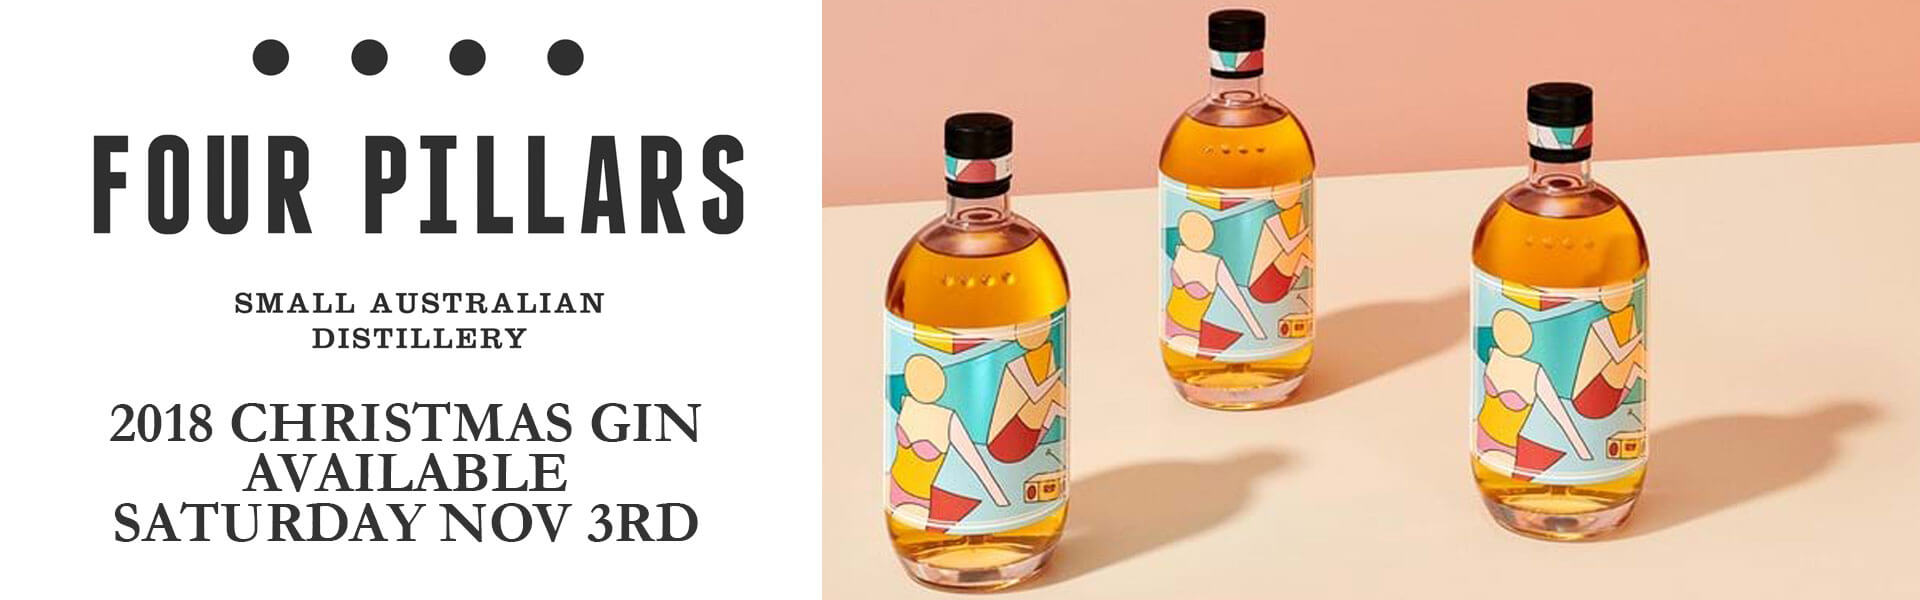 Four Pillars Australian Christmas Gin 2018 available here at Wine Sellers Direct.